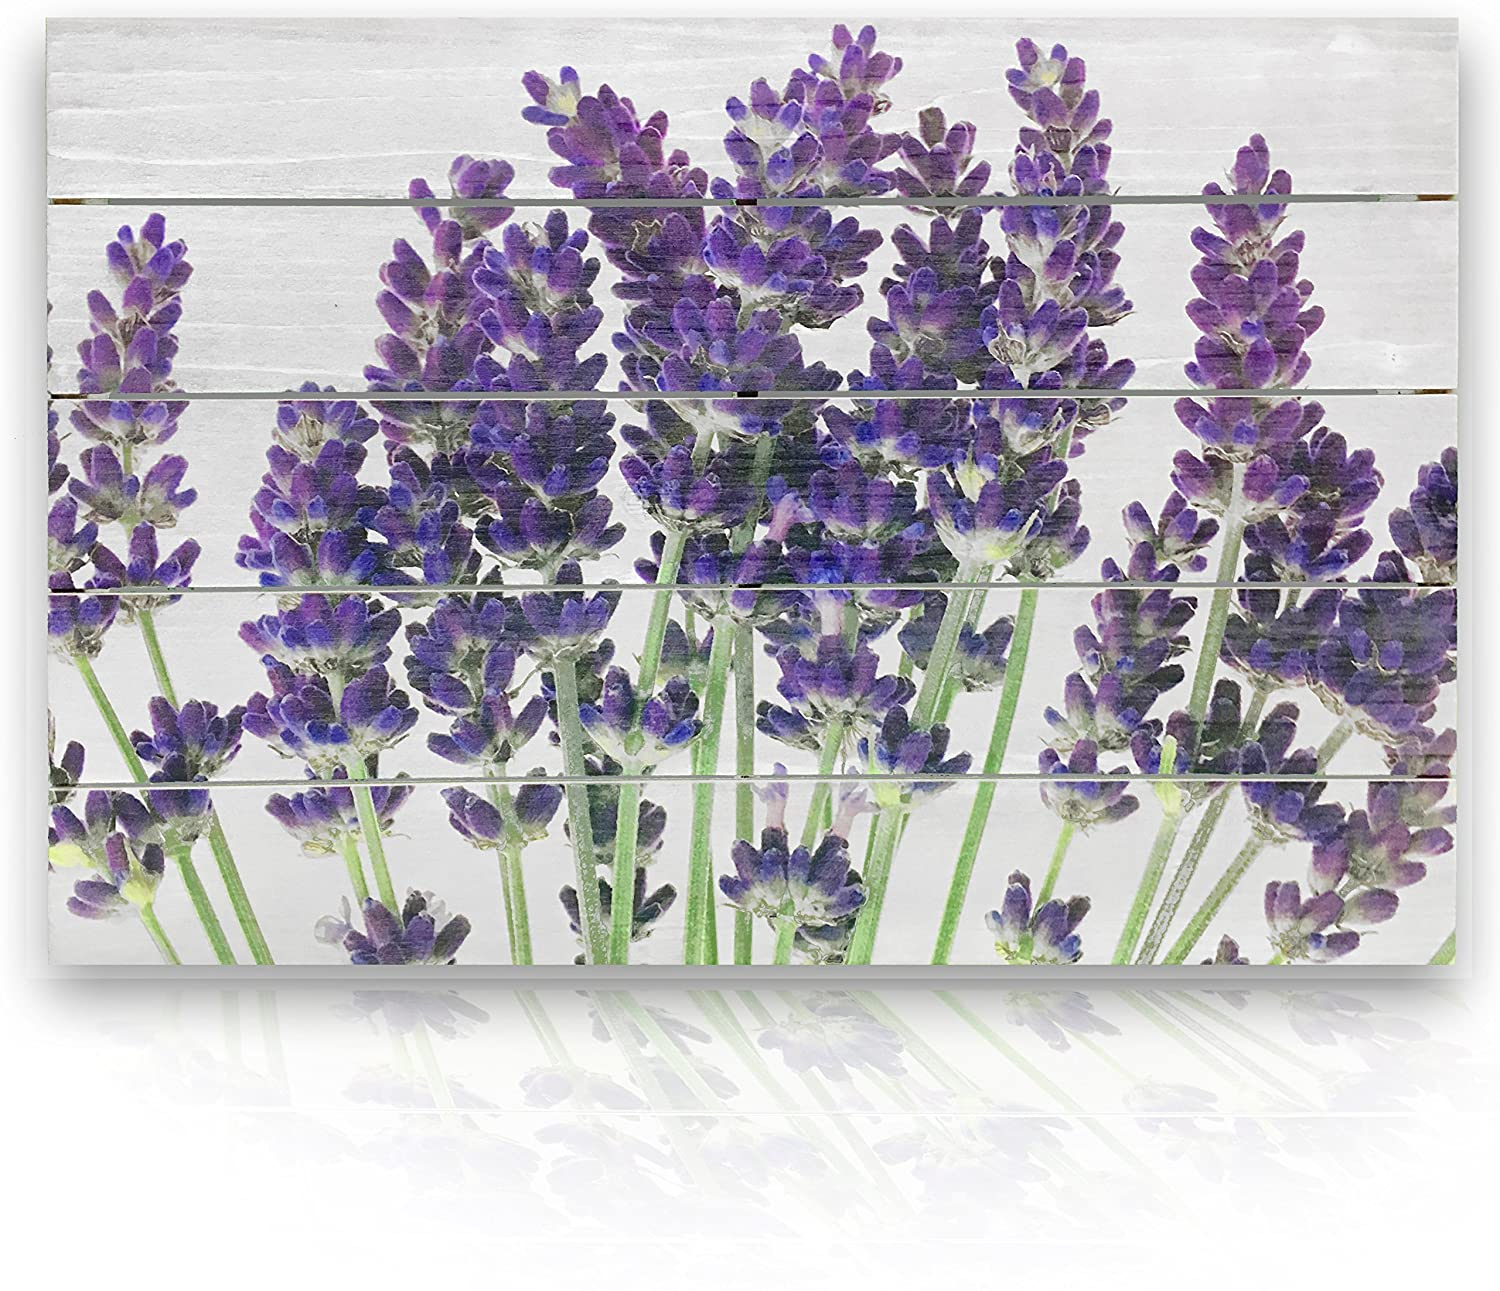 """  Natural Wood Wall Decor 16"""" x 24""""   Rustic Purple Lavender Flowers on White Fir   Shiplap Style. Authentic Wood Plank 3d Wall Art. Non Canvas. Home Decor for Kitchen, Bedroom, Bathroom"""